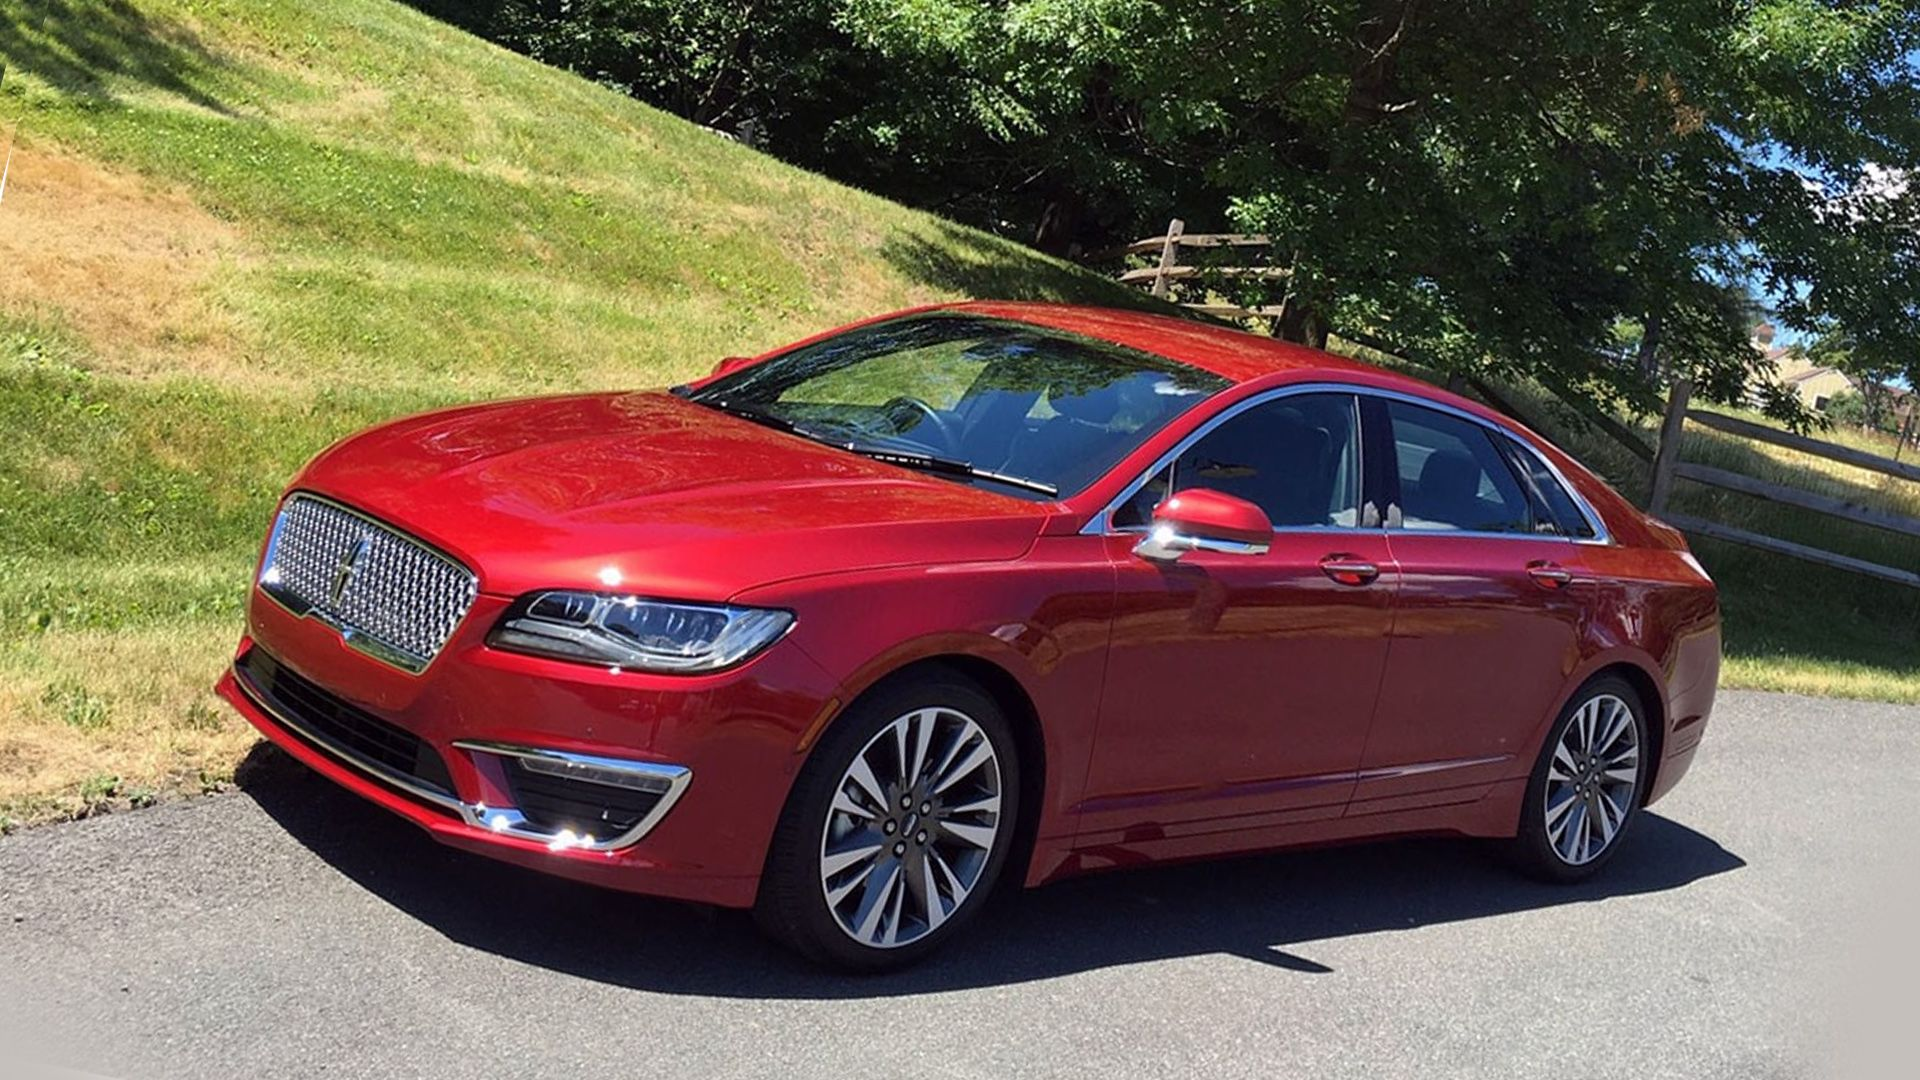 New 2018 Lincoln MKZ Price